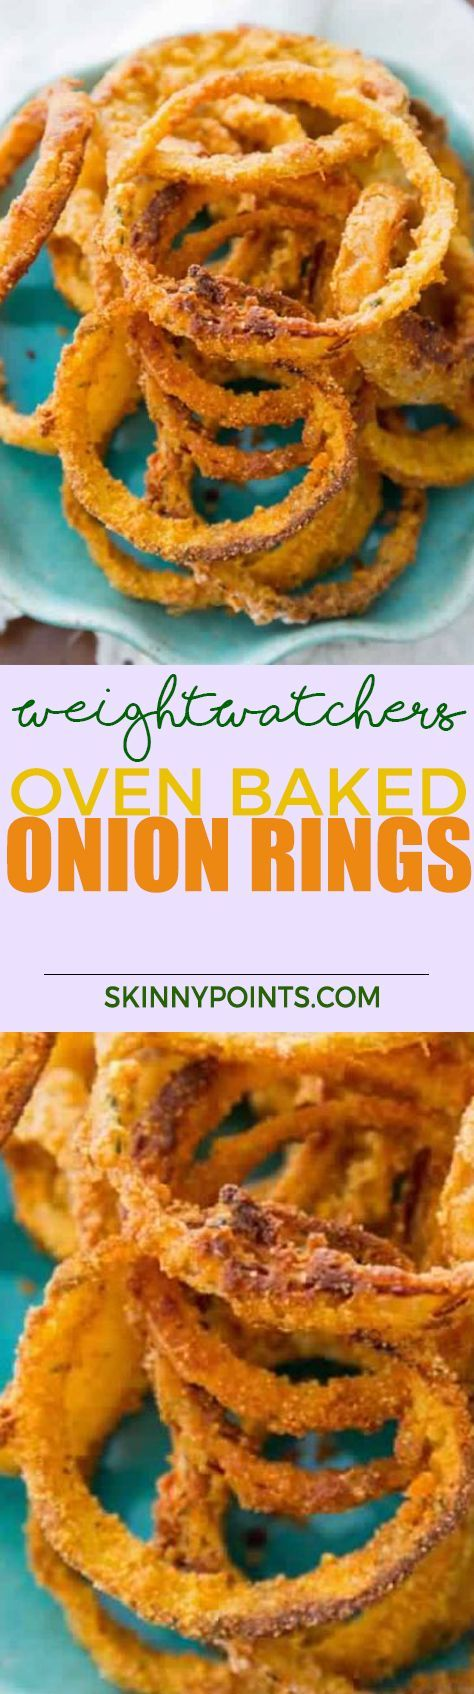 Oven Baked Onion Rings With Only 3 weight watchers smart points